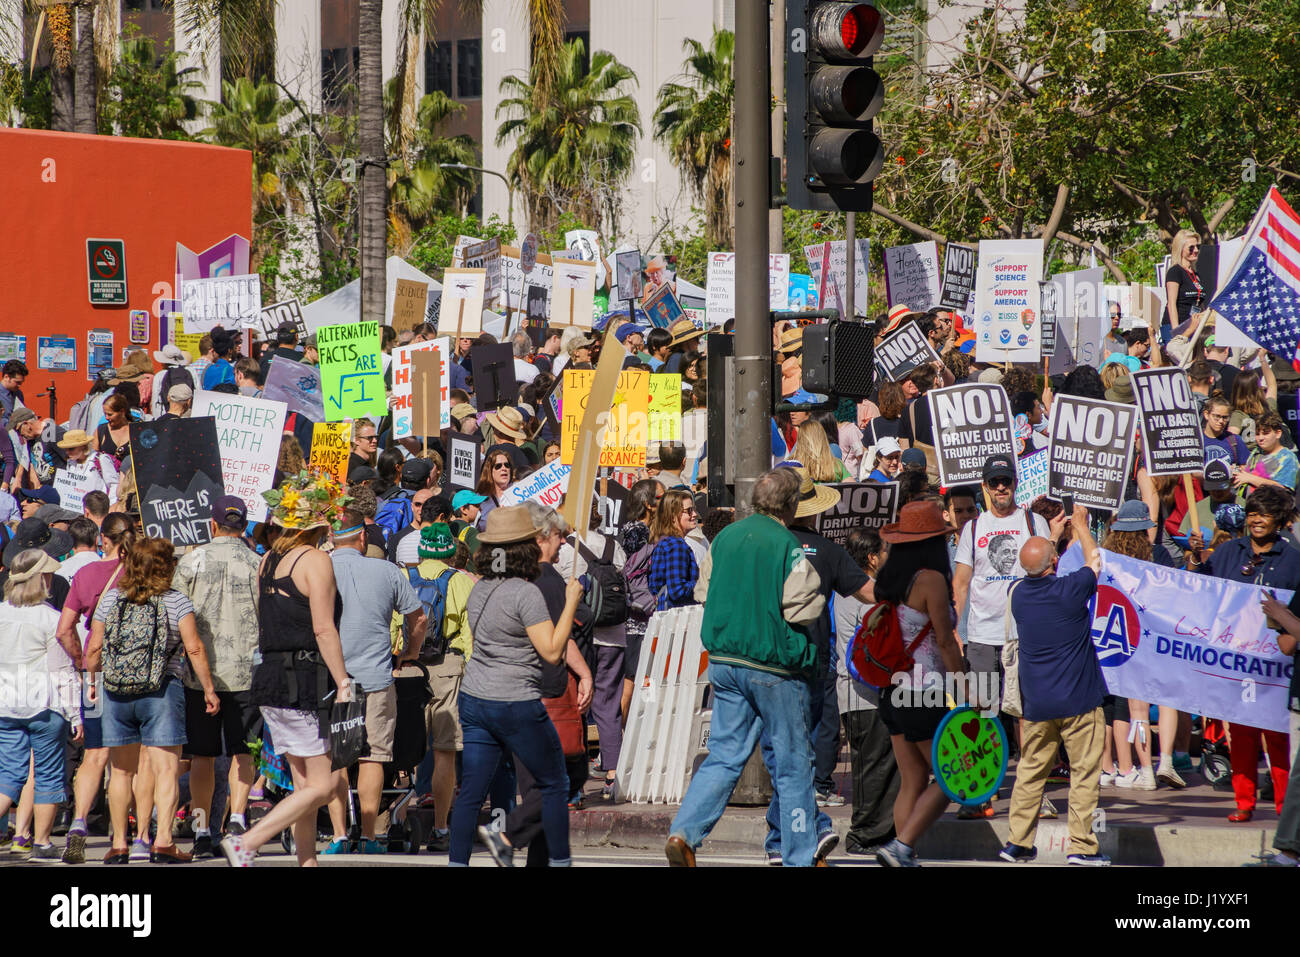 Los Angeles, USA. 22nd April, 2017. Special event - March for Science LA on APR 22, 2017 at Los Angeles, California Stock Photo